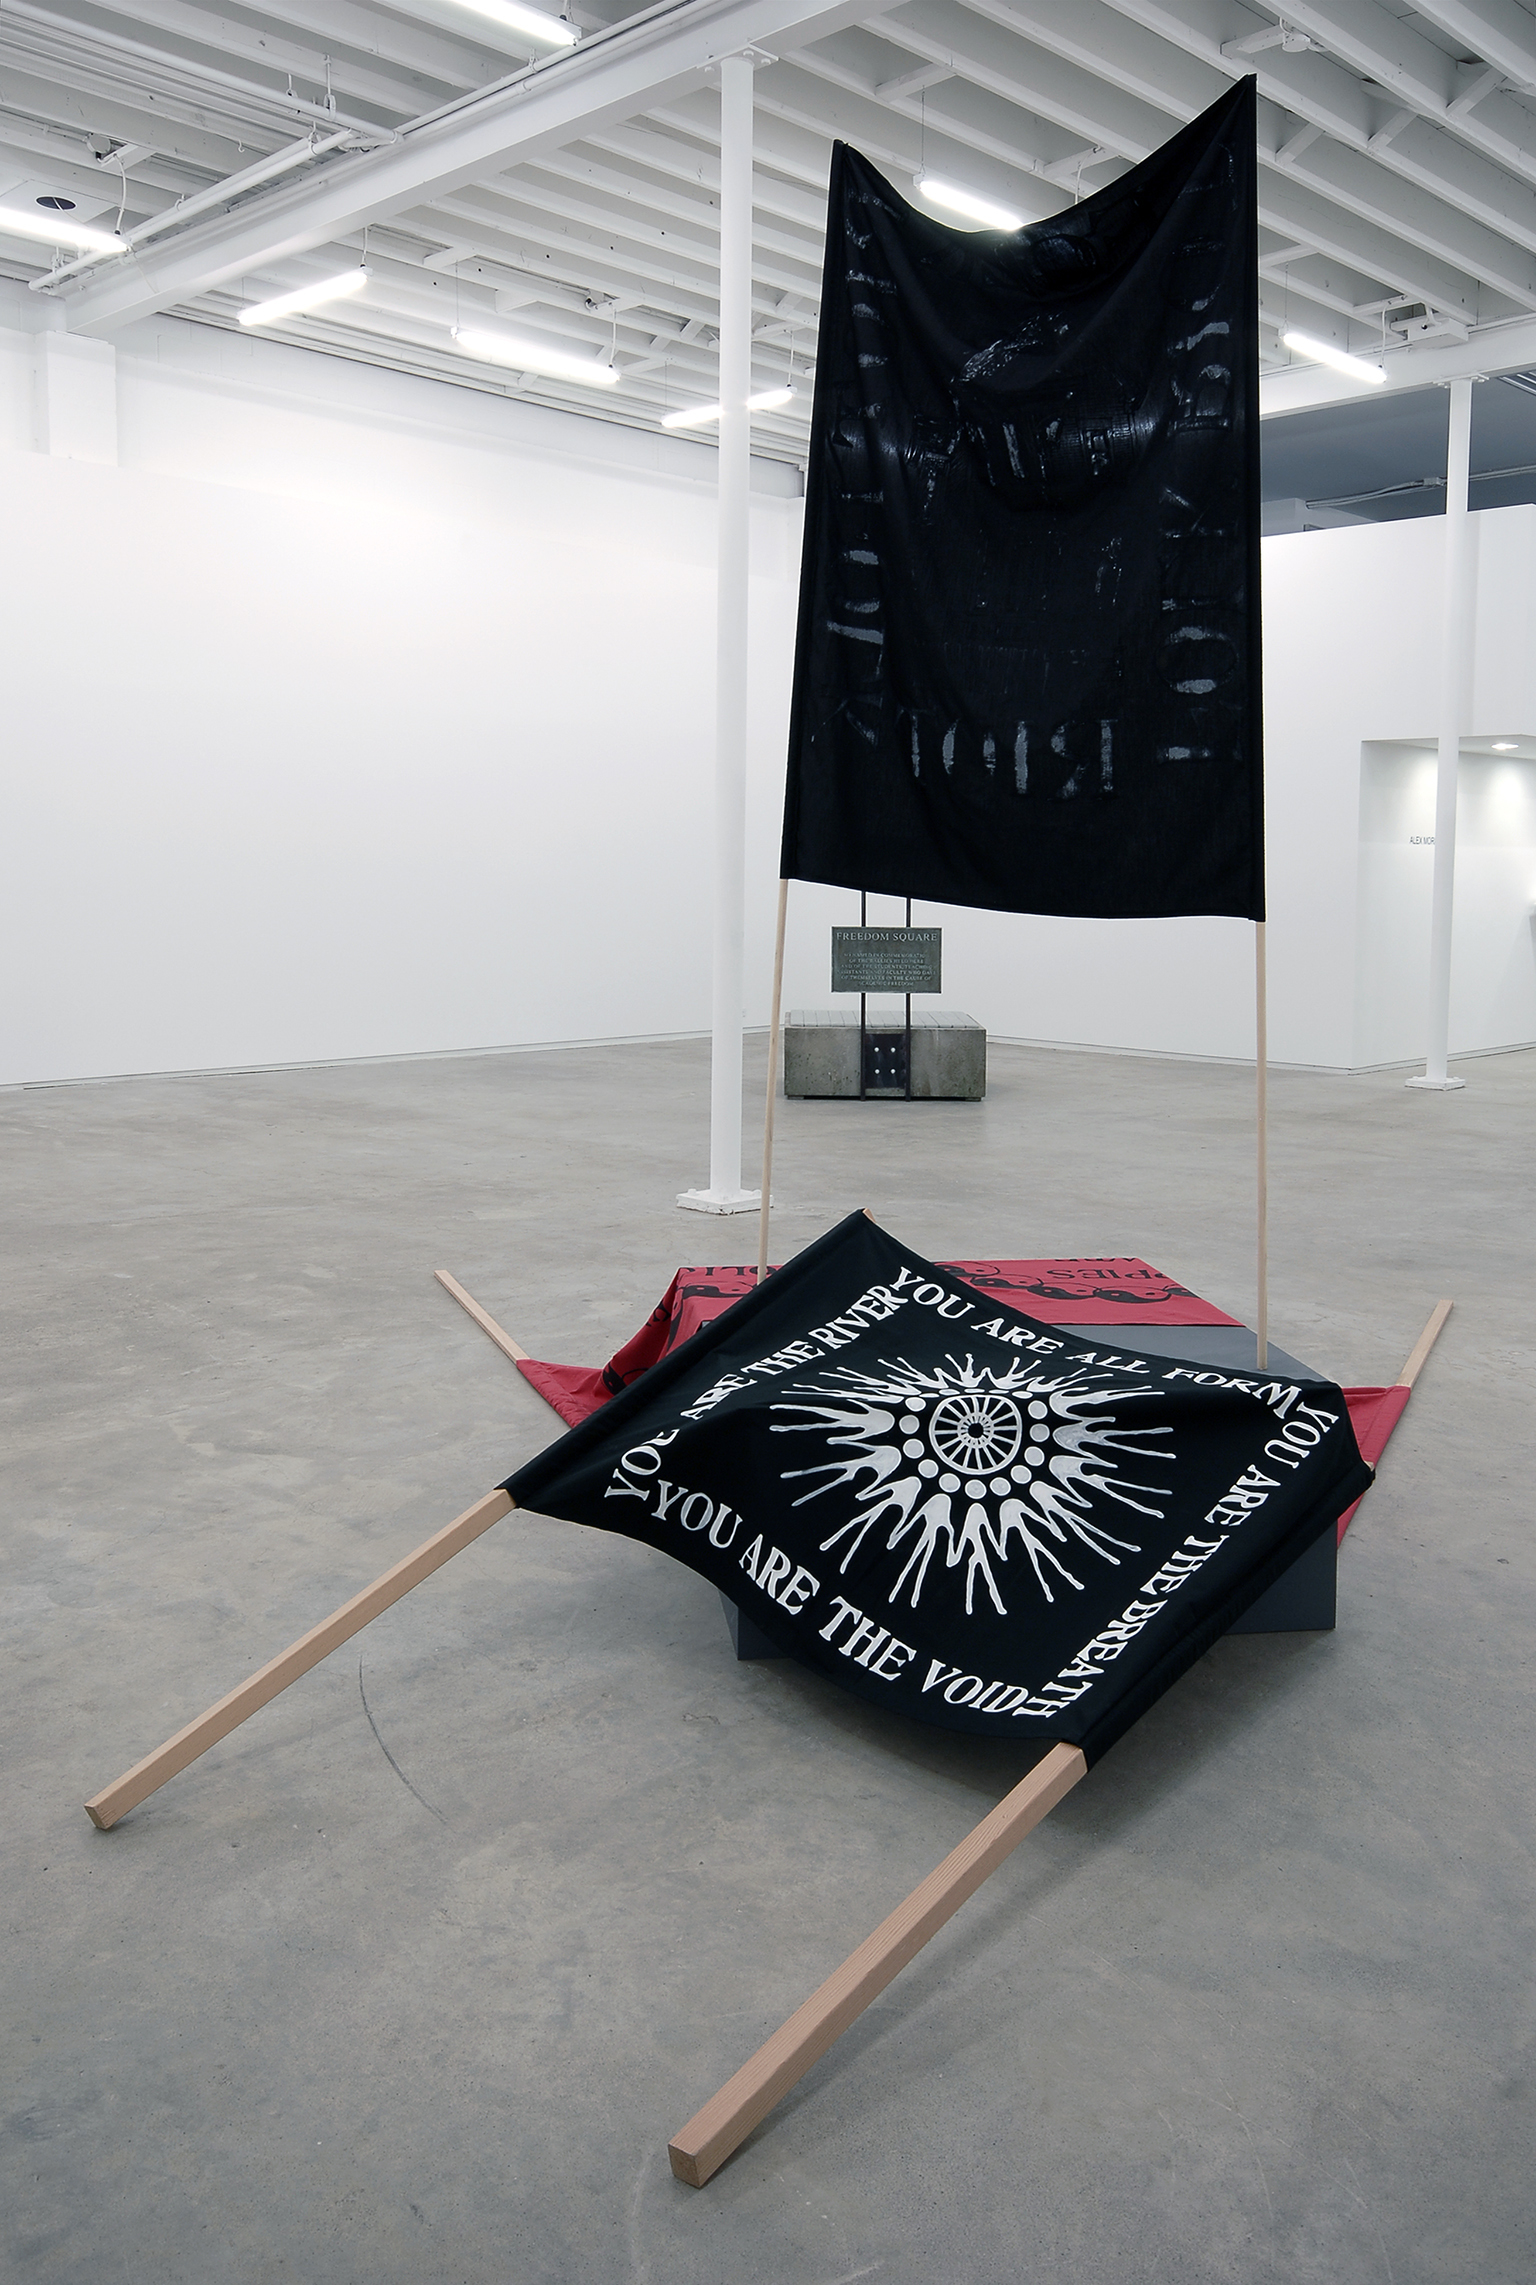 Alex Morrison, Folk Riot, Police Create Hippies/Hippies Create Police, You are All Form, You are the Breath, You are the River, You are the Void, 2007, acrylic on cotton, pine wood, medite plinth, dimensions variable by